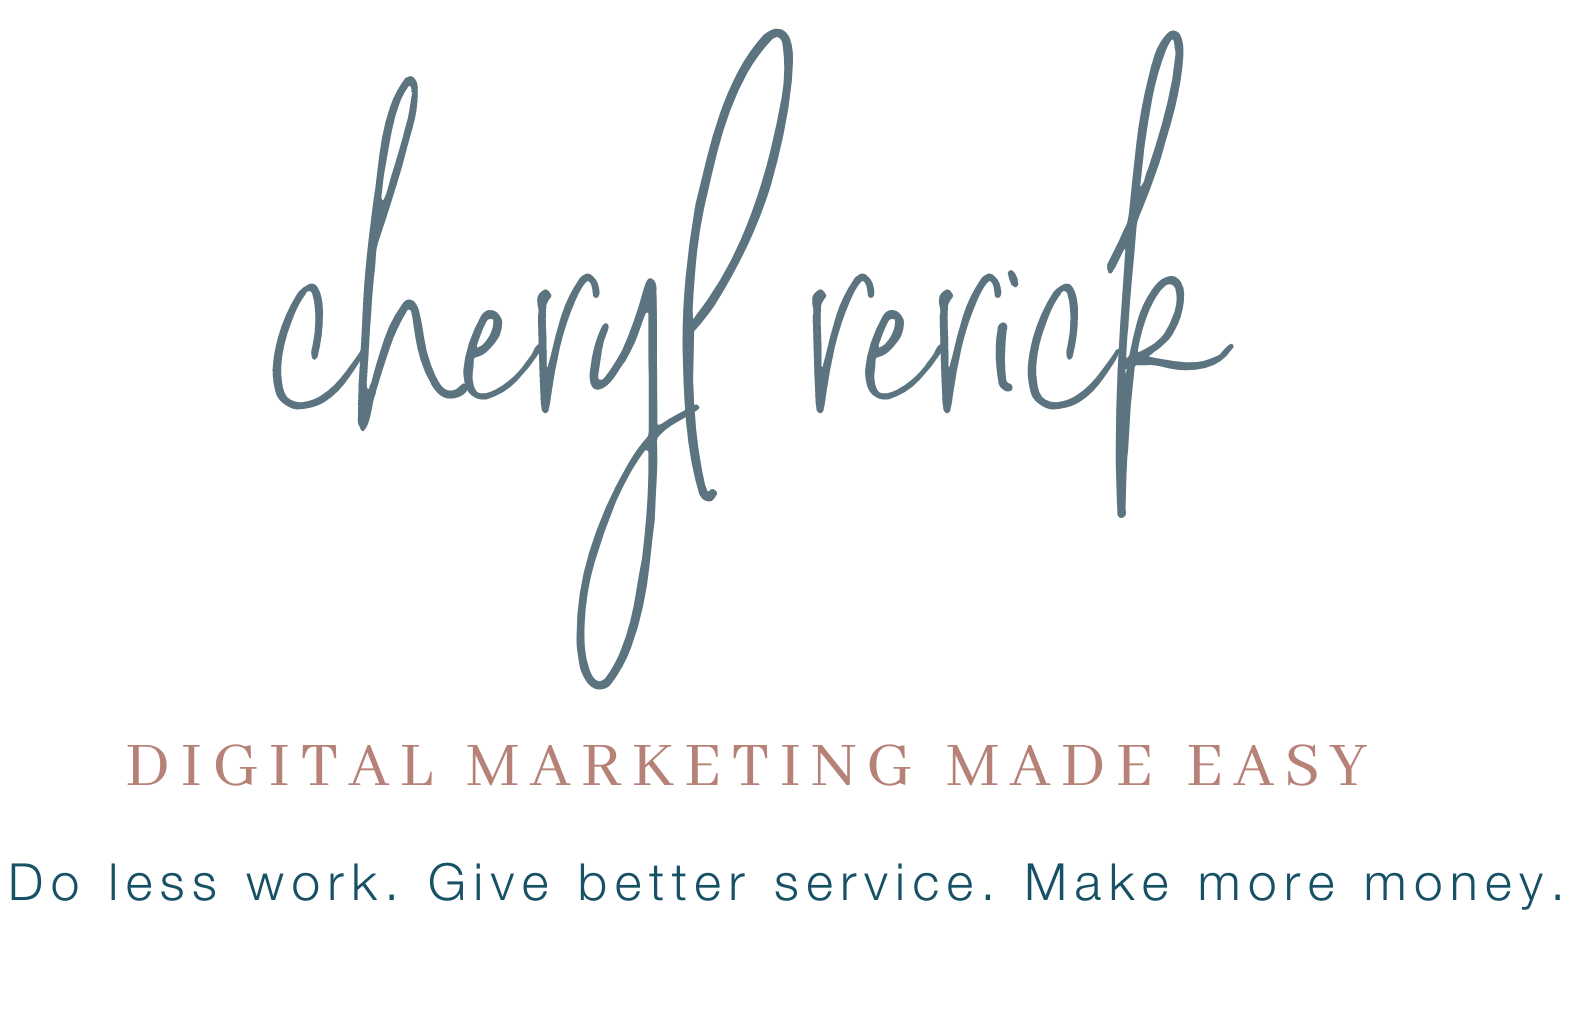 cheryl rerick digital marketing